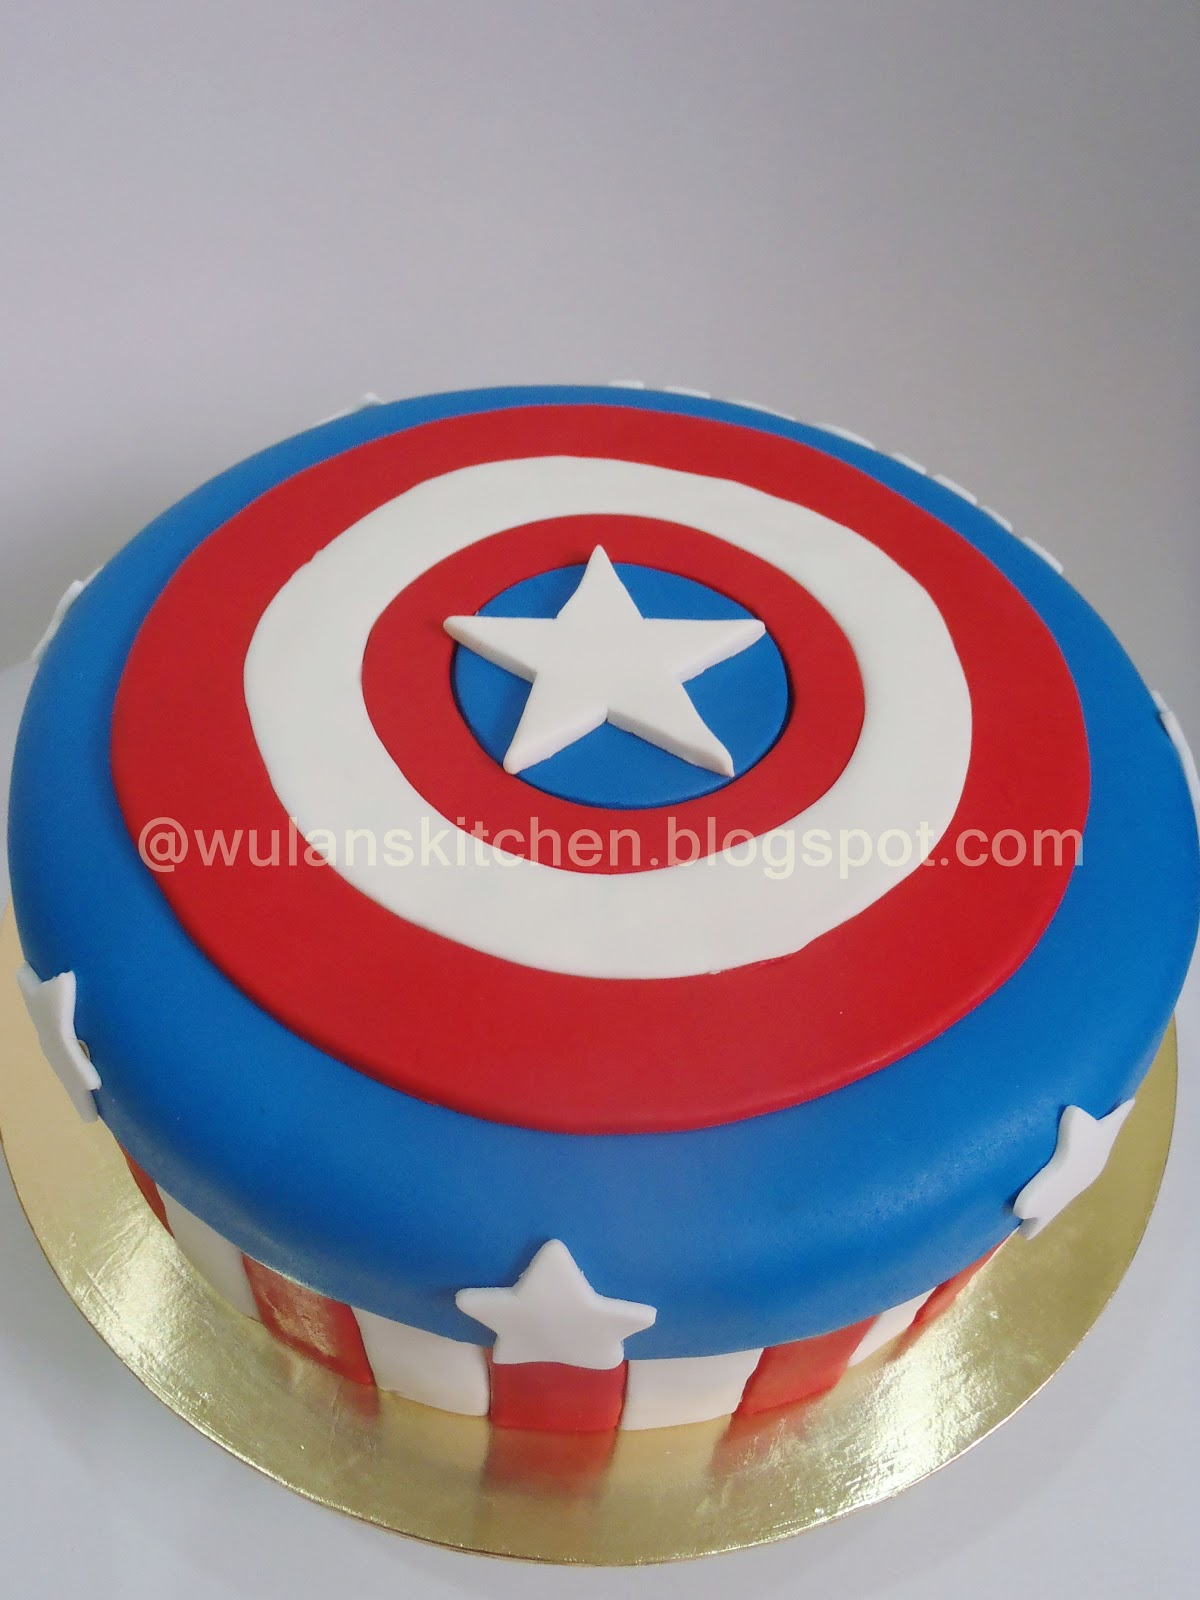 Cake Captain America Pinterest : Pin Sparklinbecks Captain America Cookies Cupcakes And ...